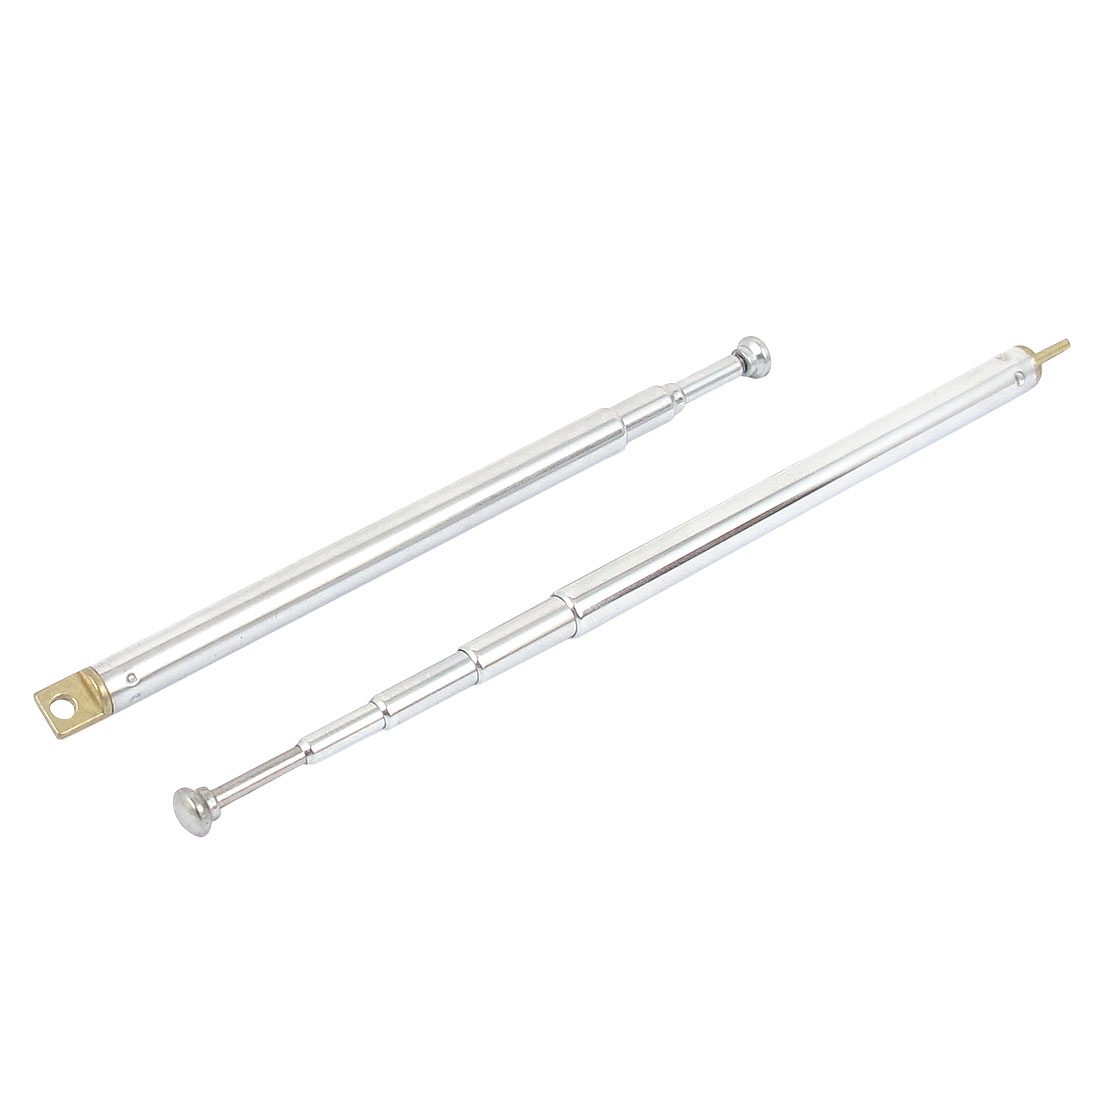 2pcs Metal Rod 5 Sections Telescopic Antenna Aerial Mast for AM FM Radio Controller